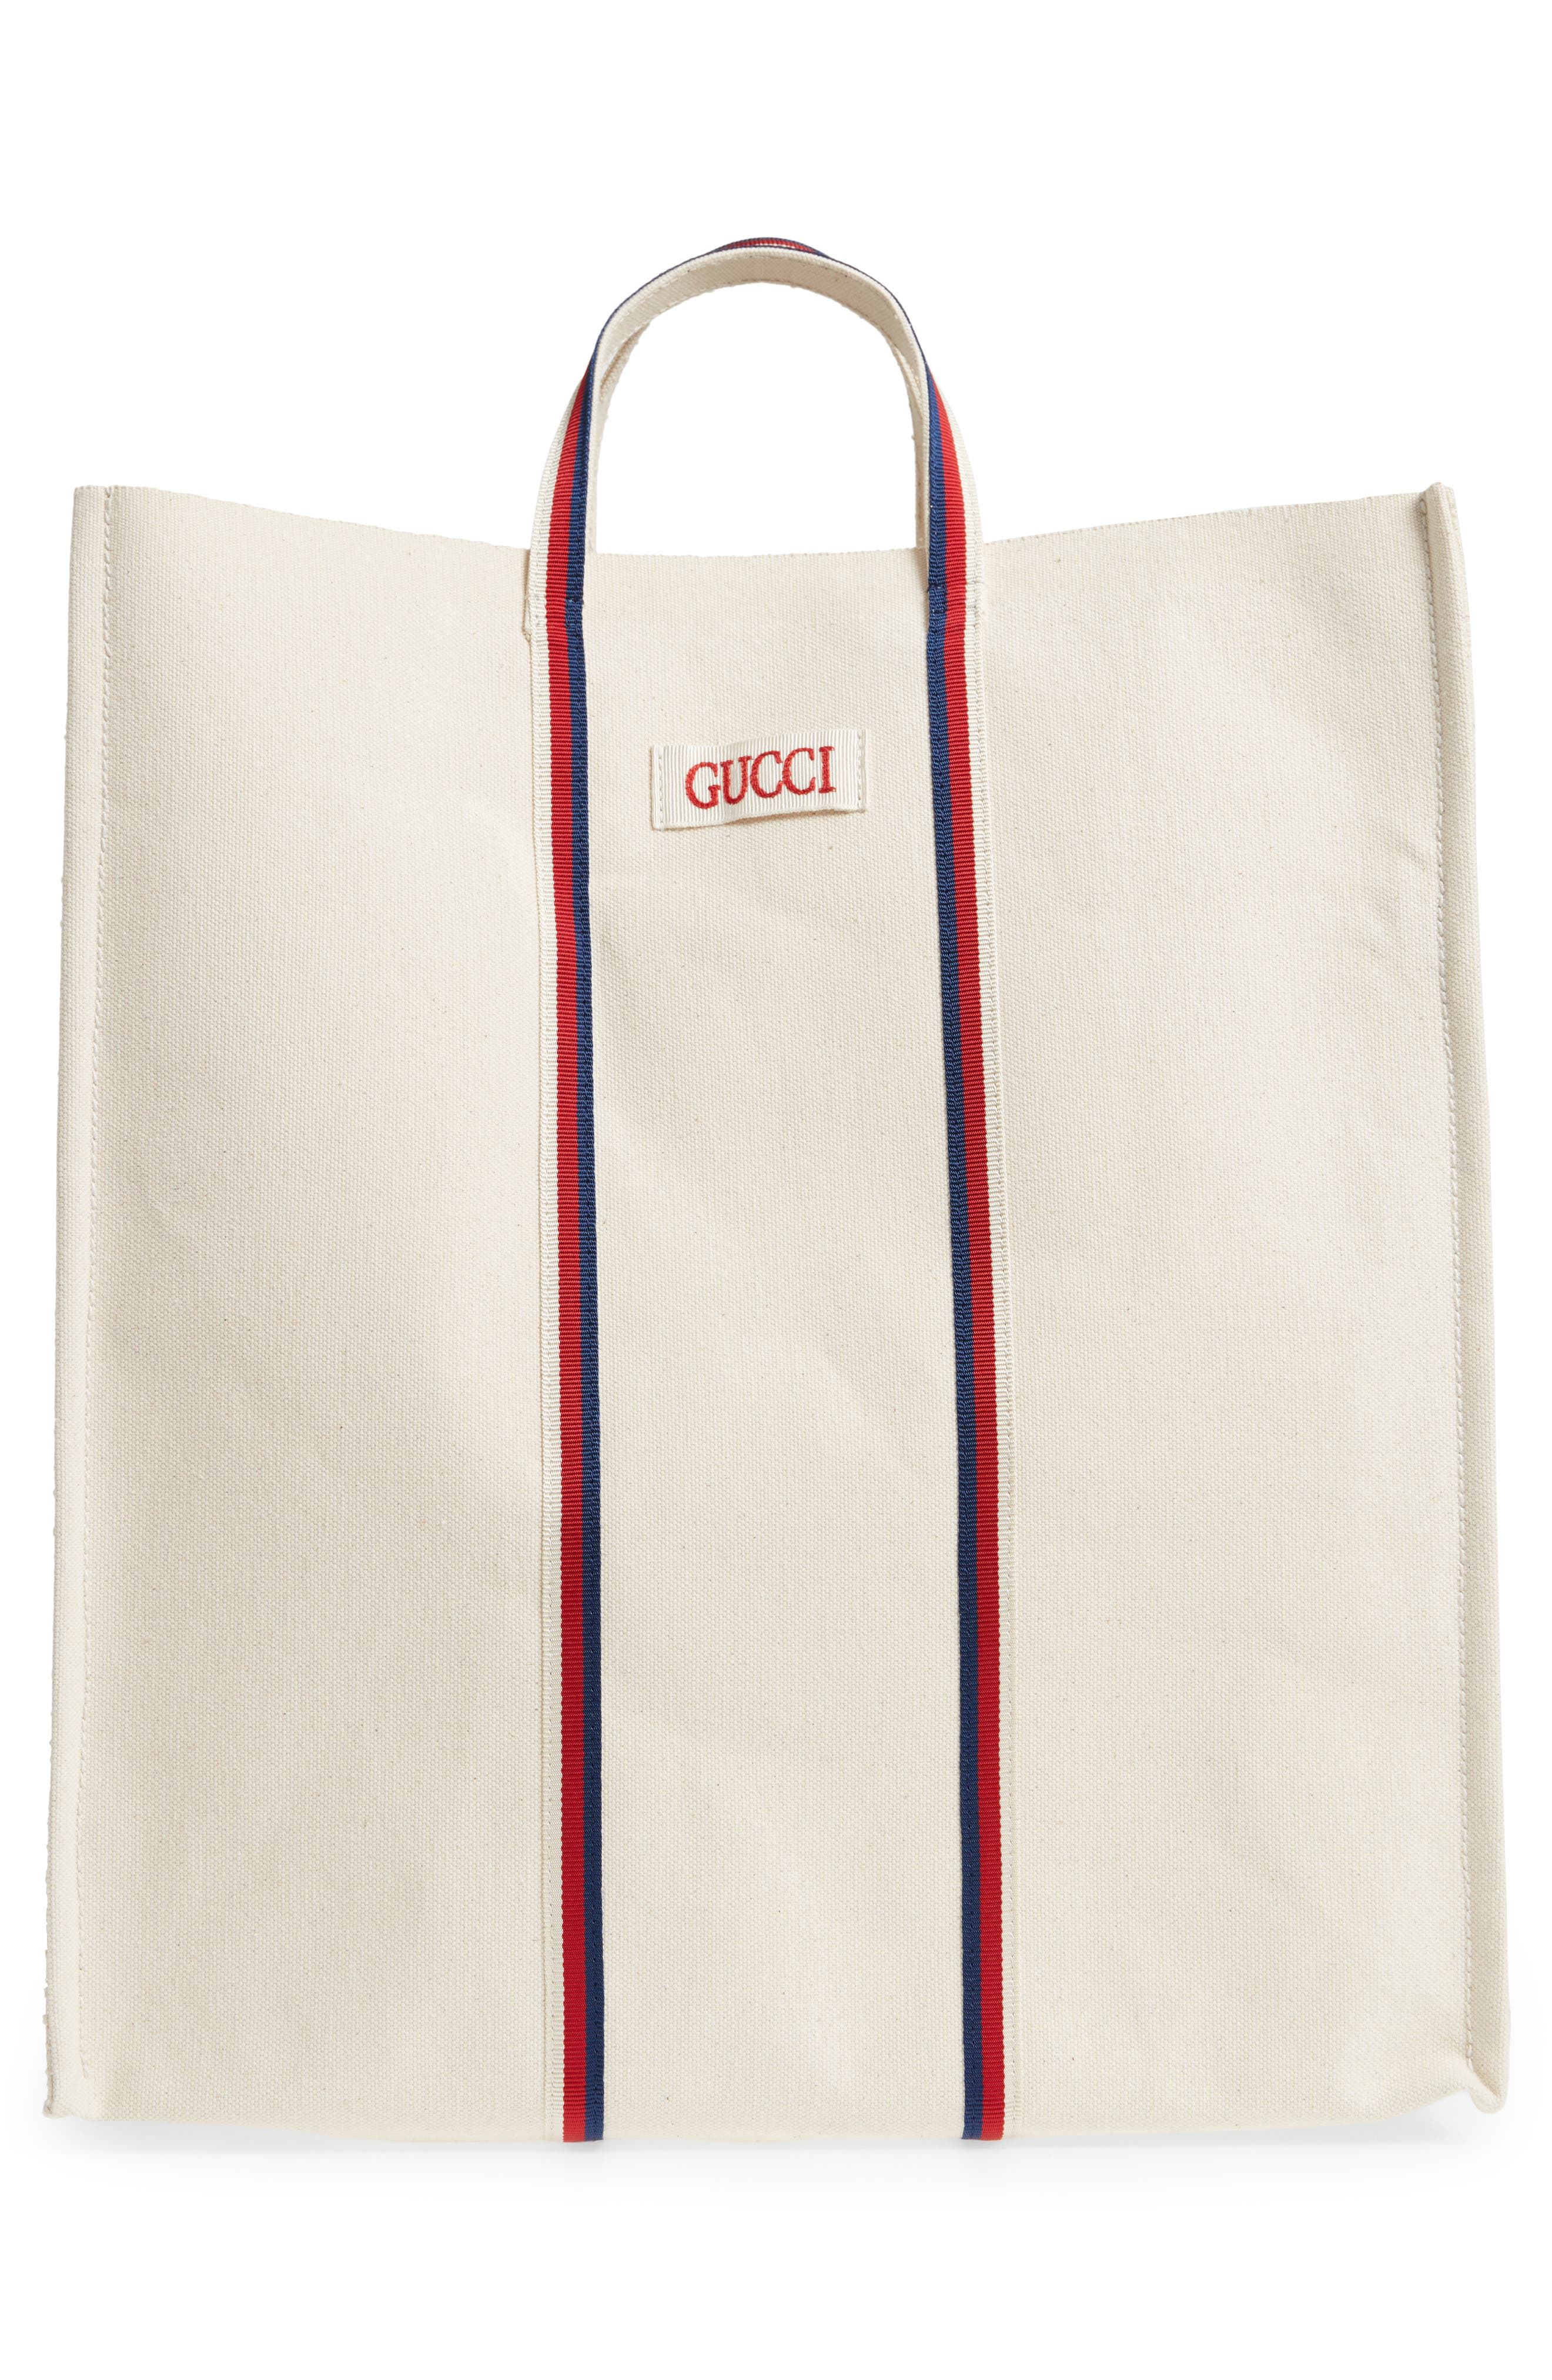 GG Supreme Canvas Tote Bag,                             Alternate thumbnail 3, color,                             IVORY